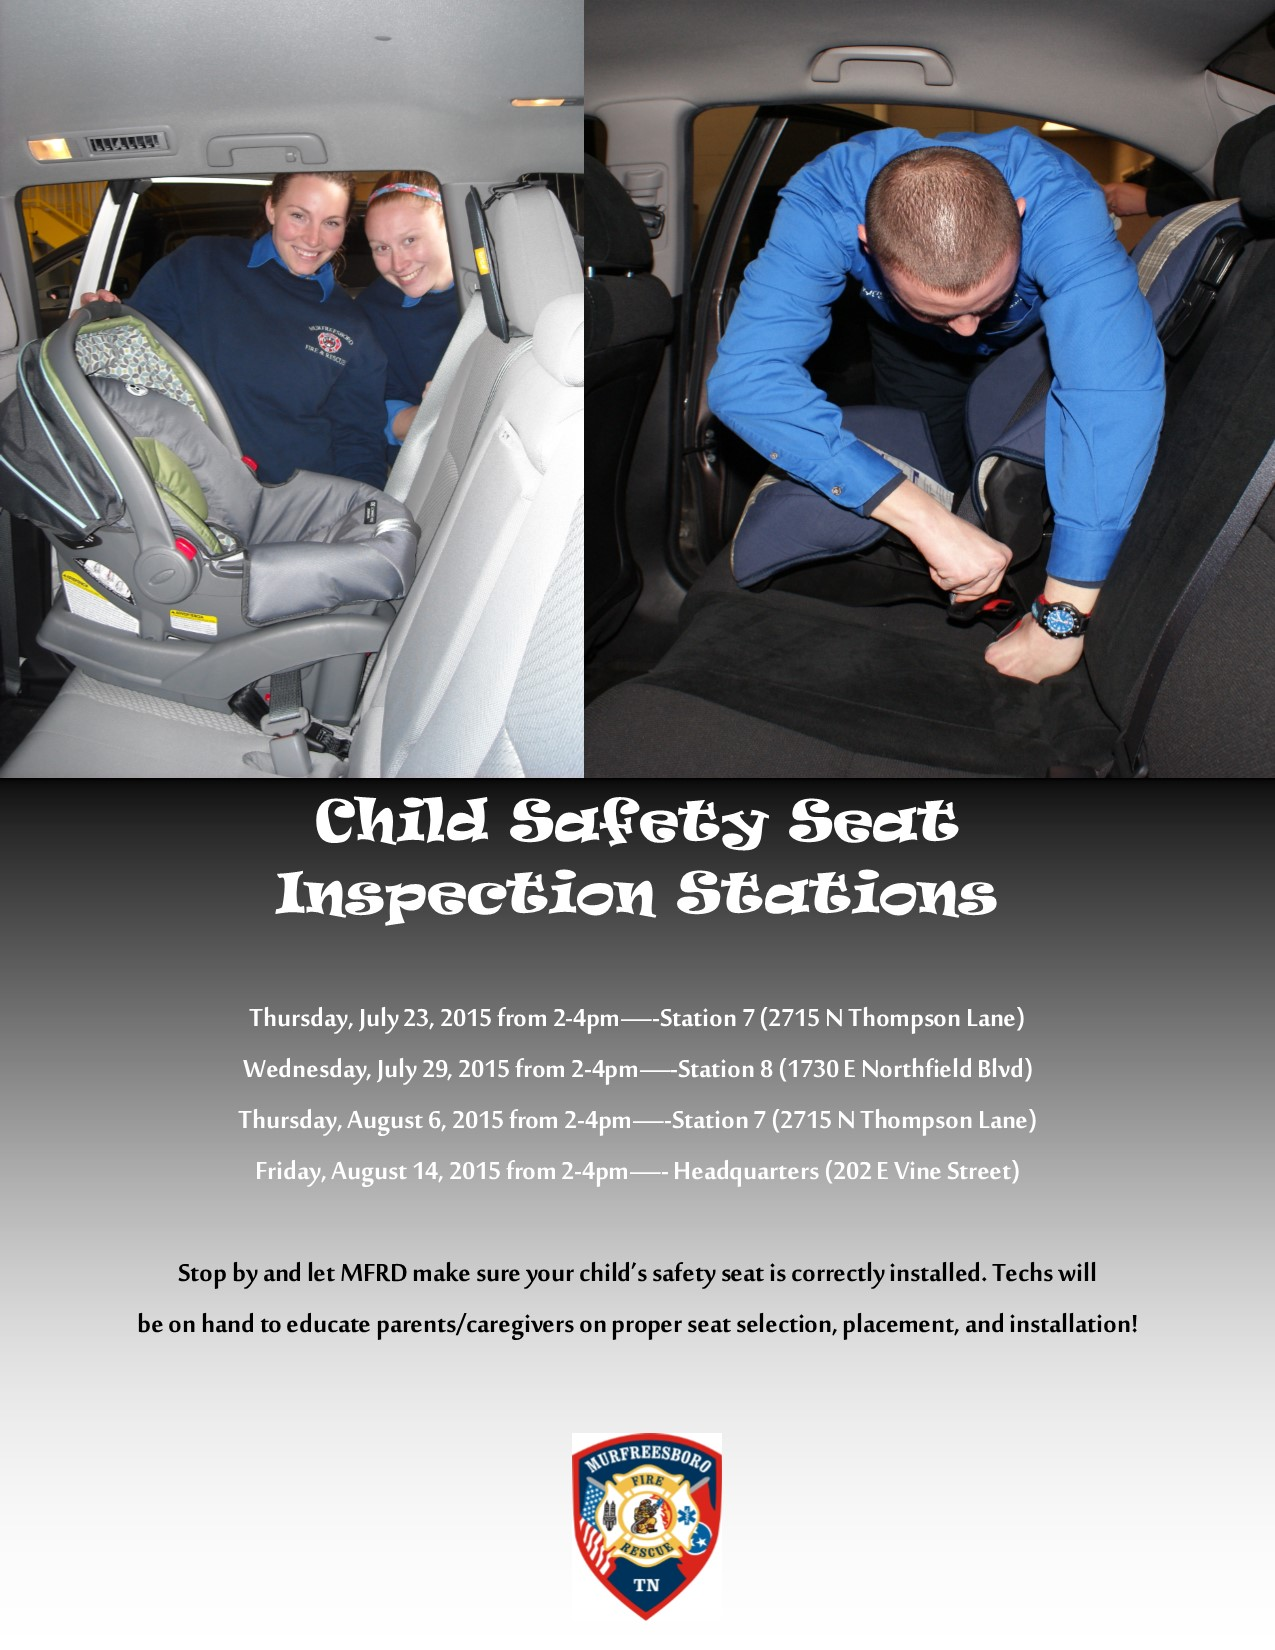 Child Safety Seat Inspections